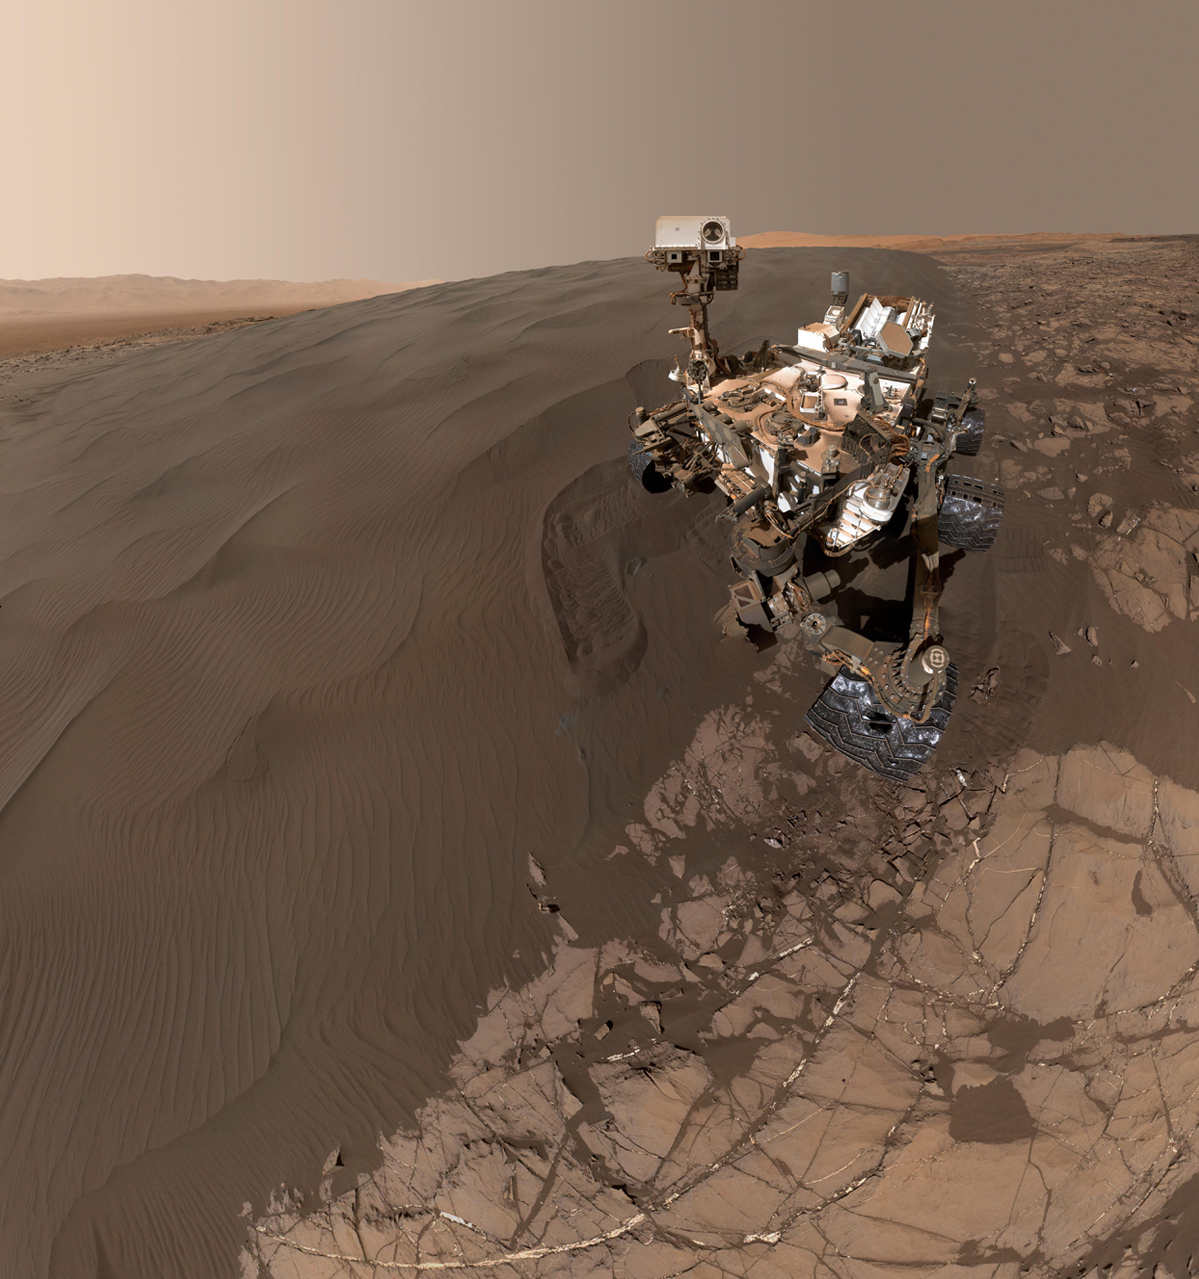 Curiosity Rover on Mars Snaps Epic Selfie with Sand Dunes (Photo)